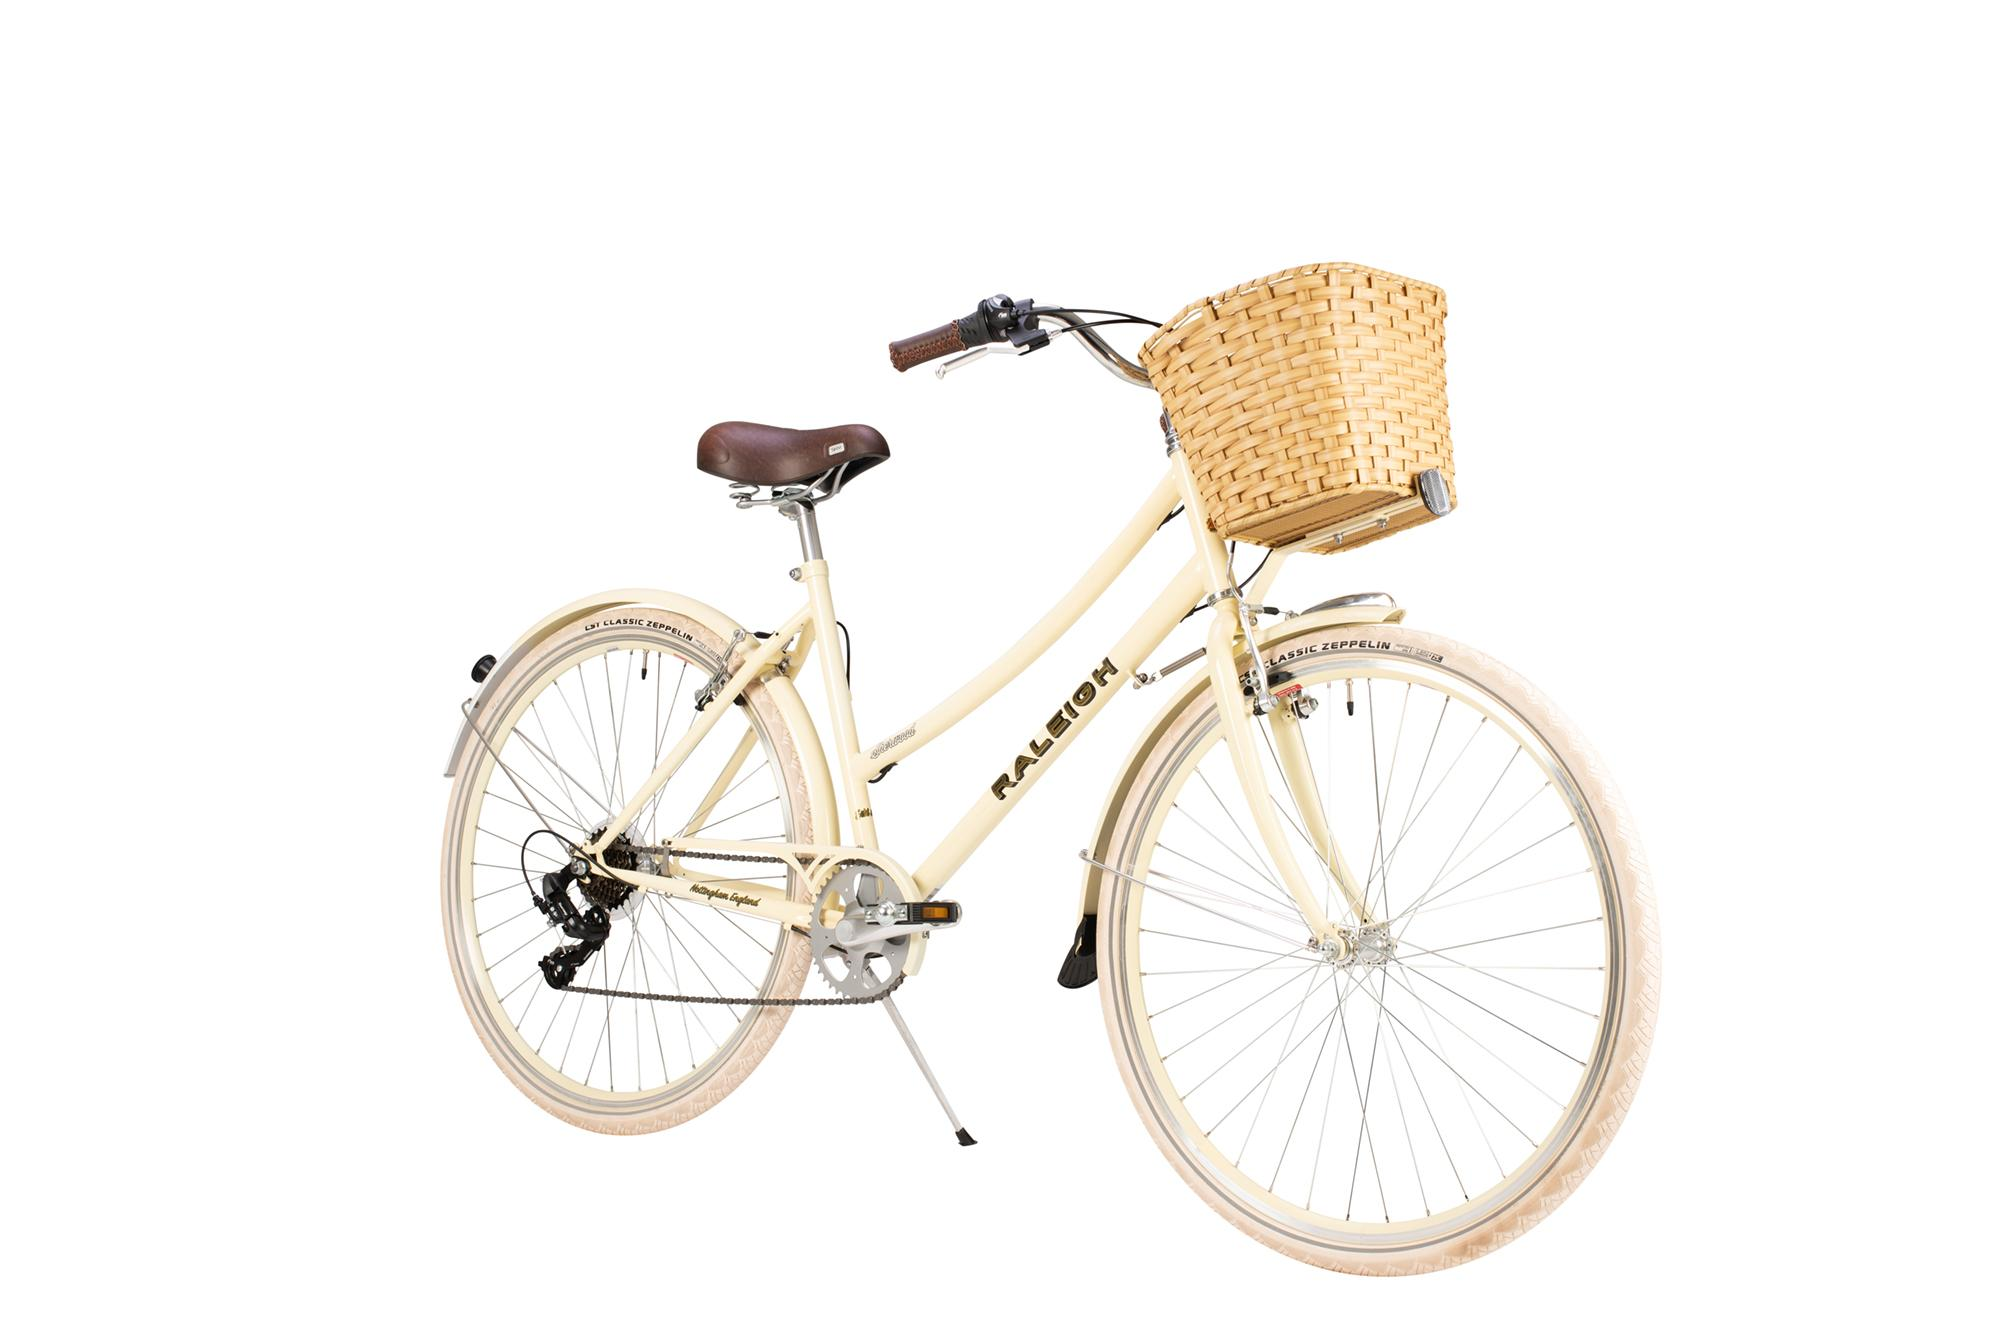 Front view of the Raleigh Sherwood classic ladies bike in milkshake colour